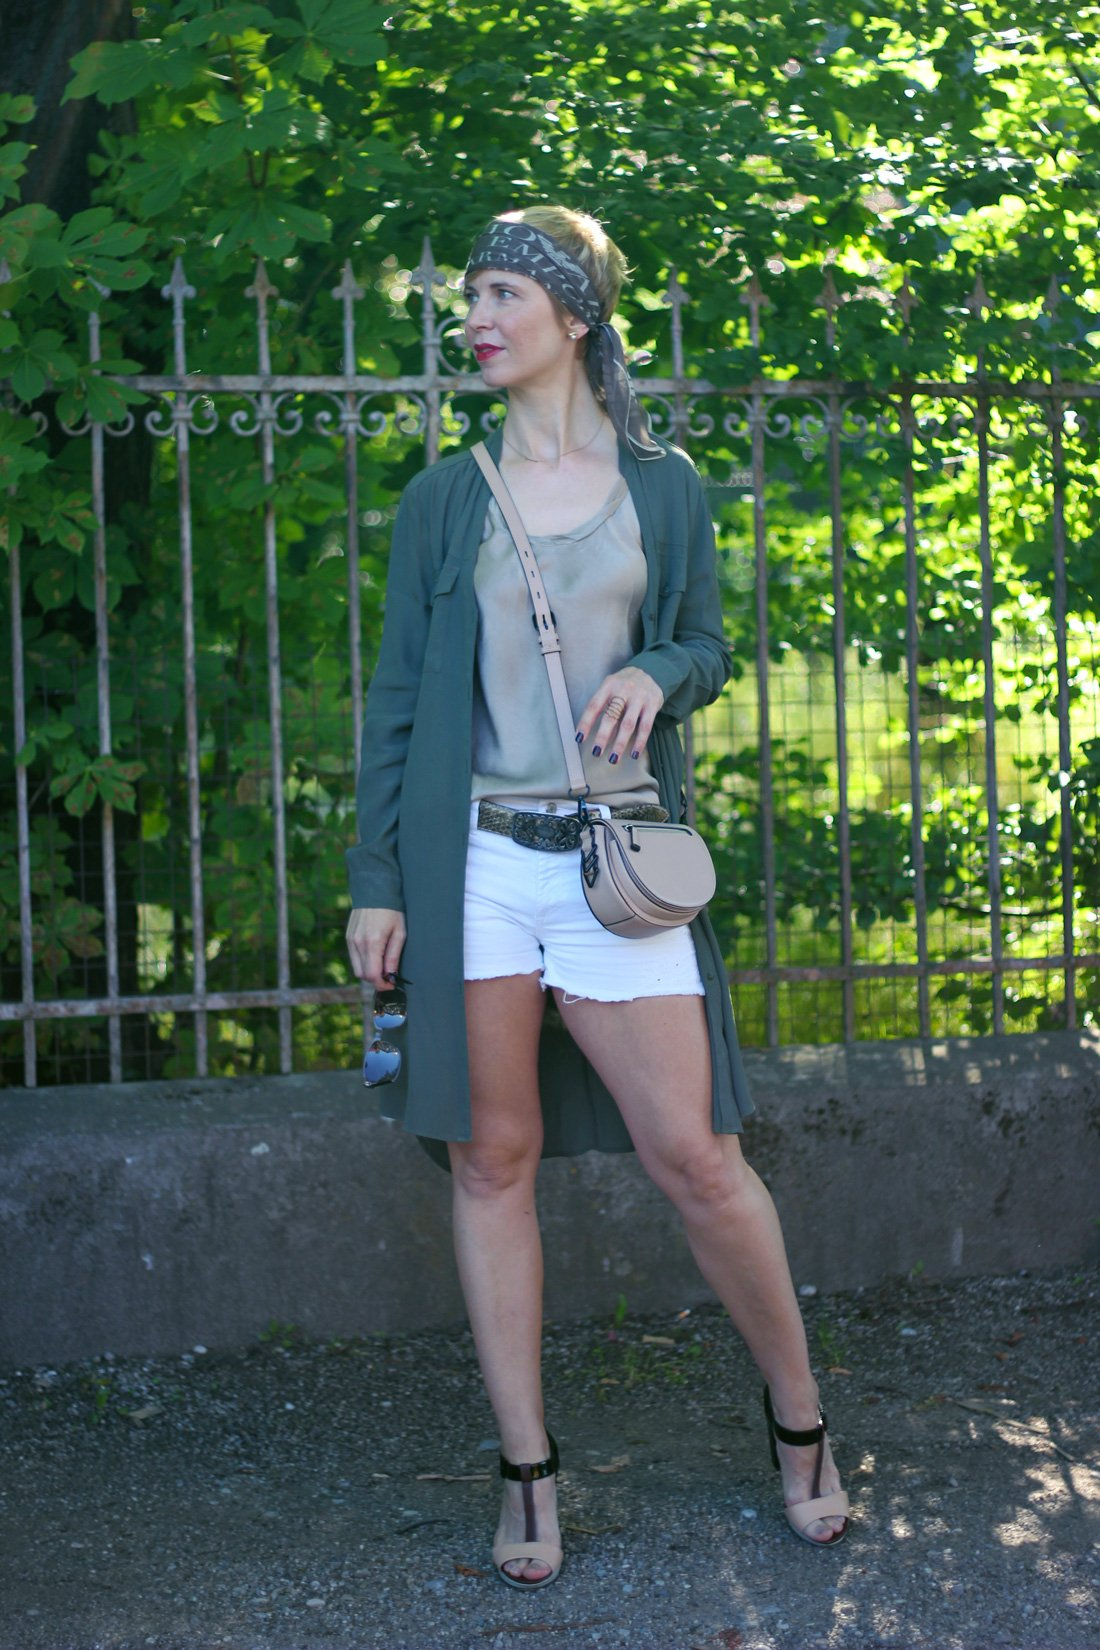 Conny-Doll-Lifestyle: Longbluse, Shorts, Seidentop, Sommerlook, Sandalen, Bandana,